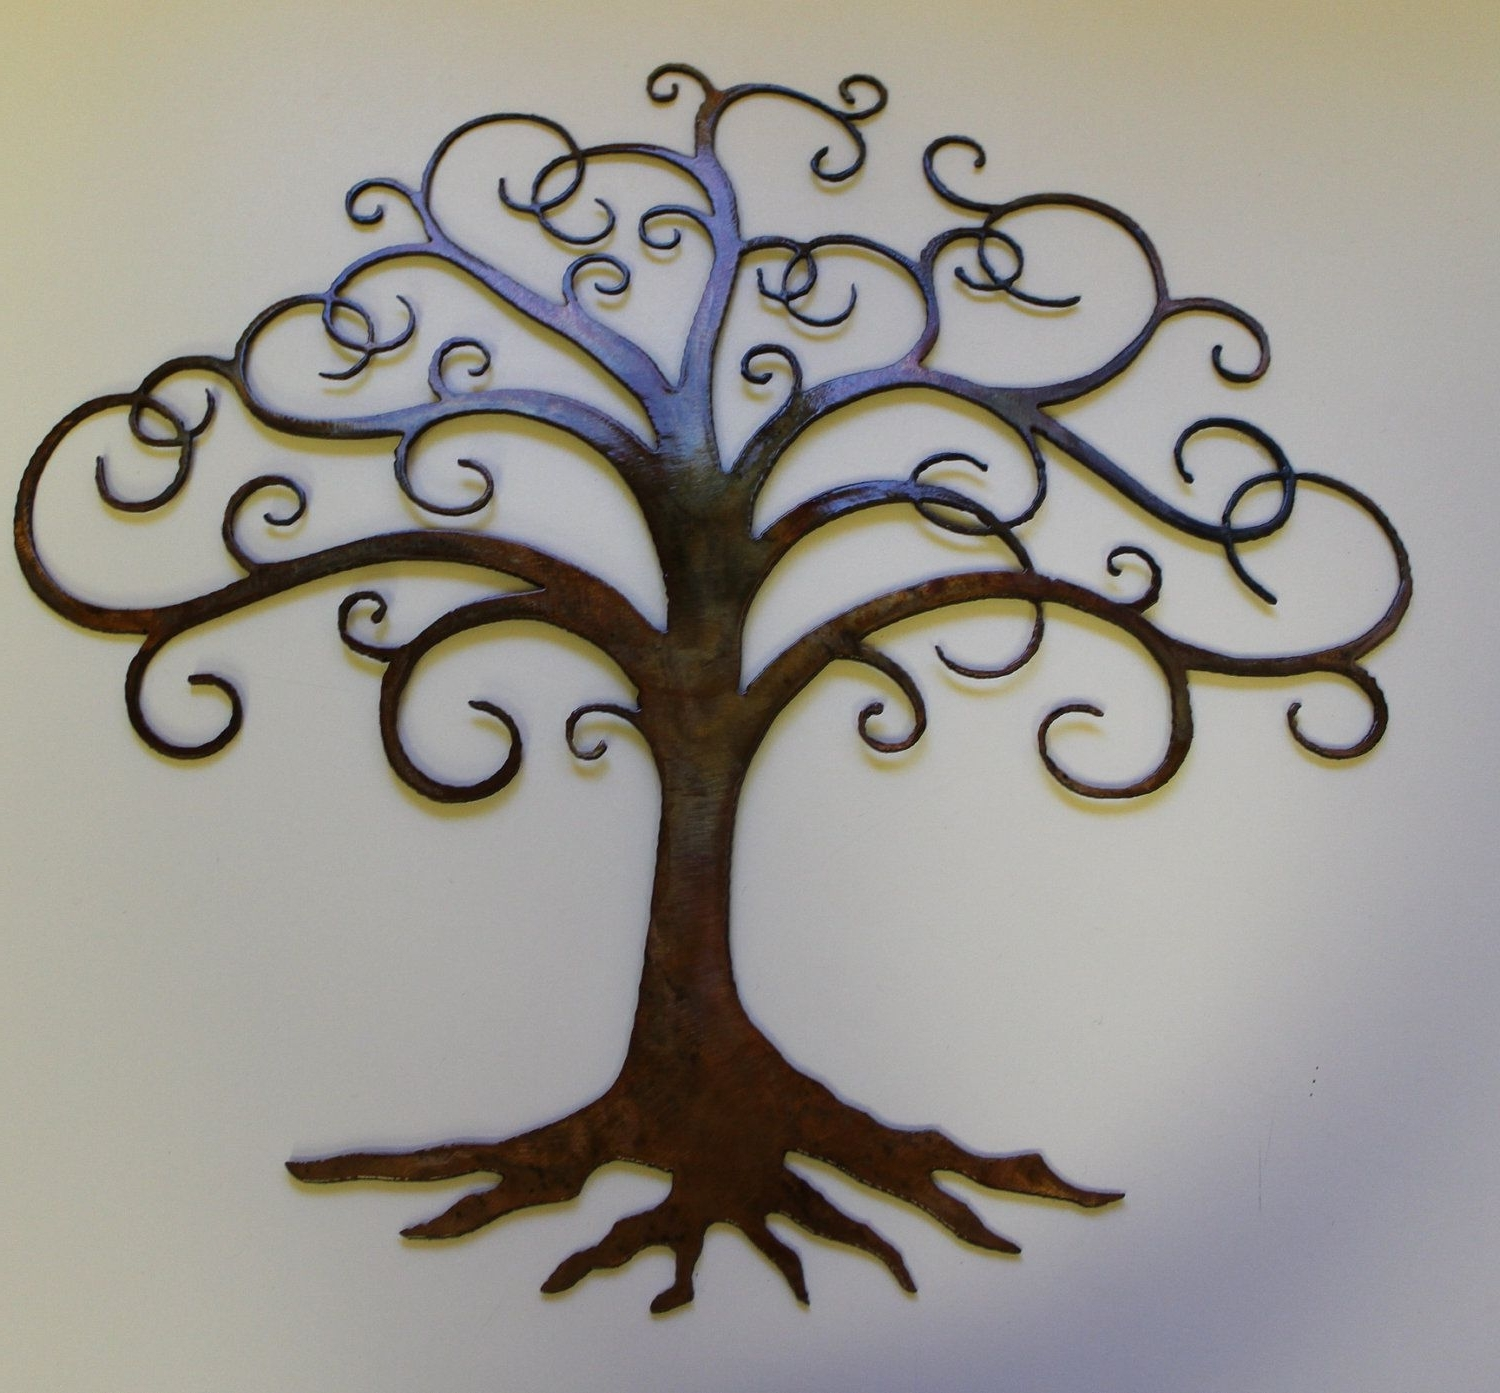 Swirled Tree Of Life Metal Wall Art Decor (View 6 of 15)